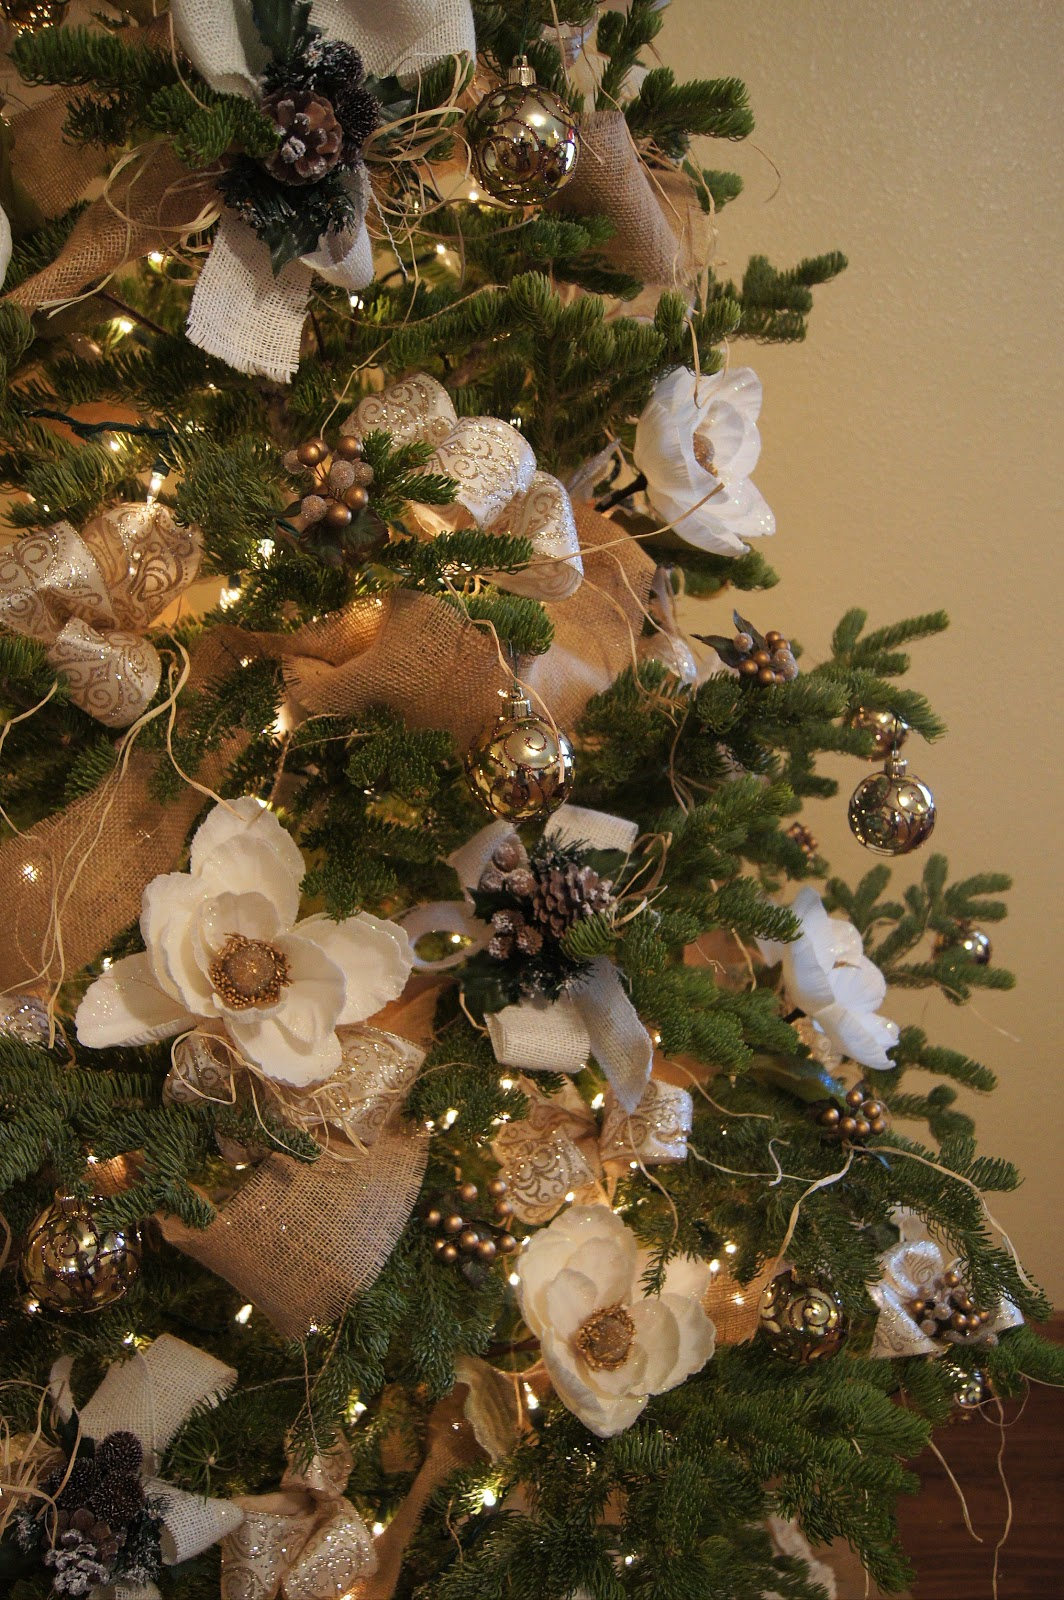 Names Of Christmas Tree Decoration Items : In full bloom floral design elegant french burlap